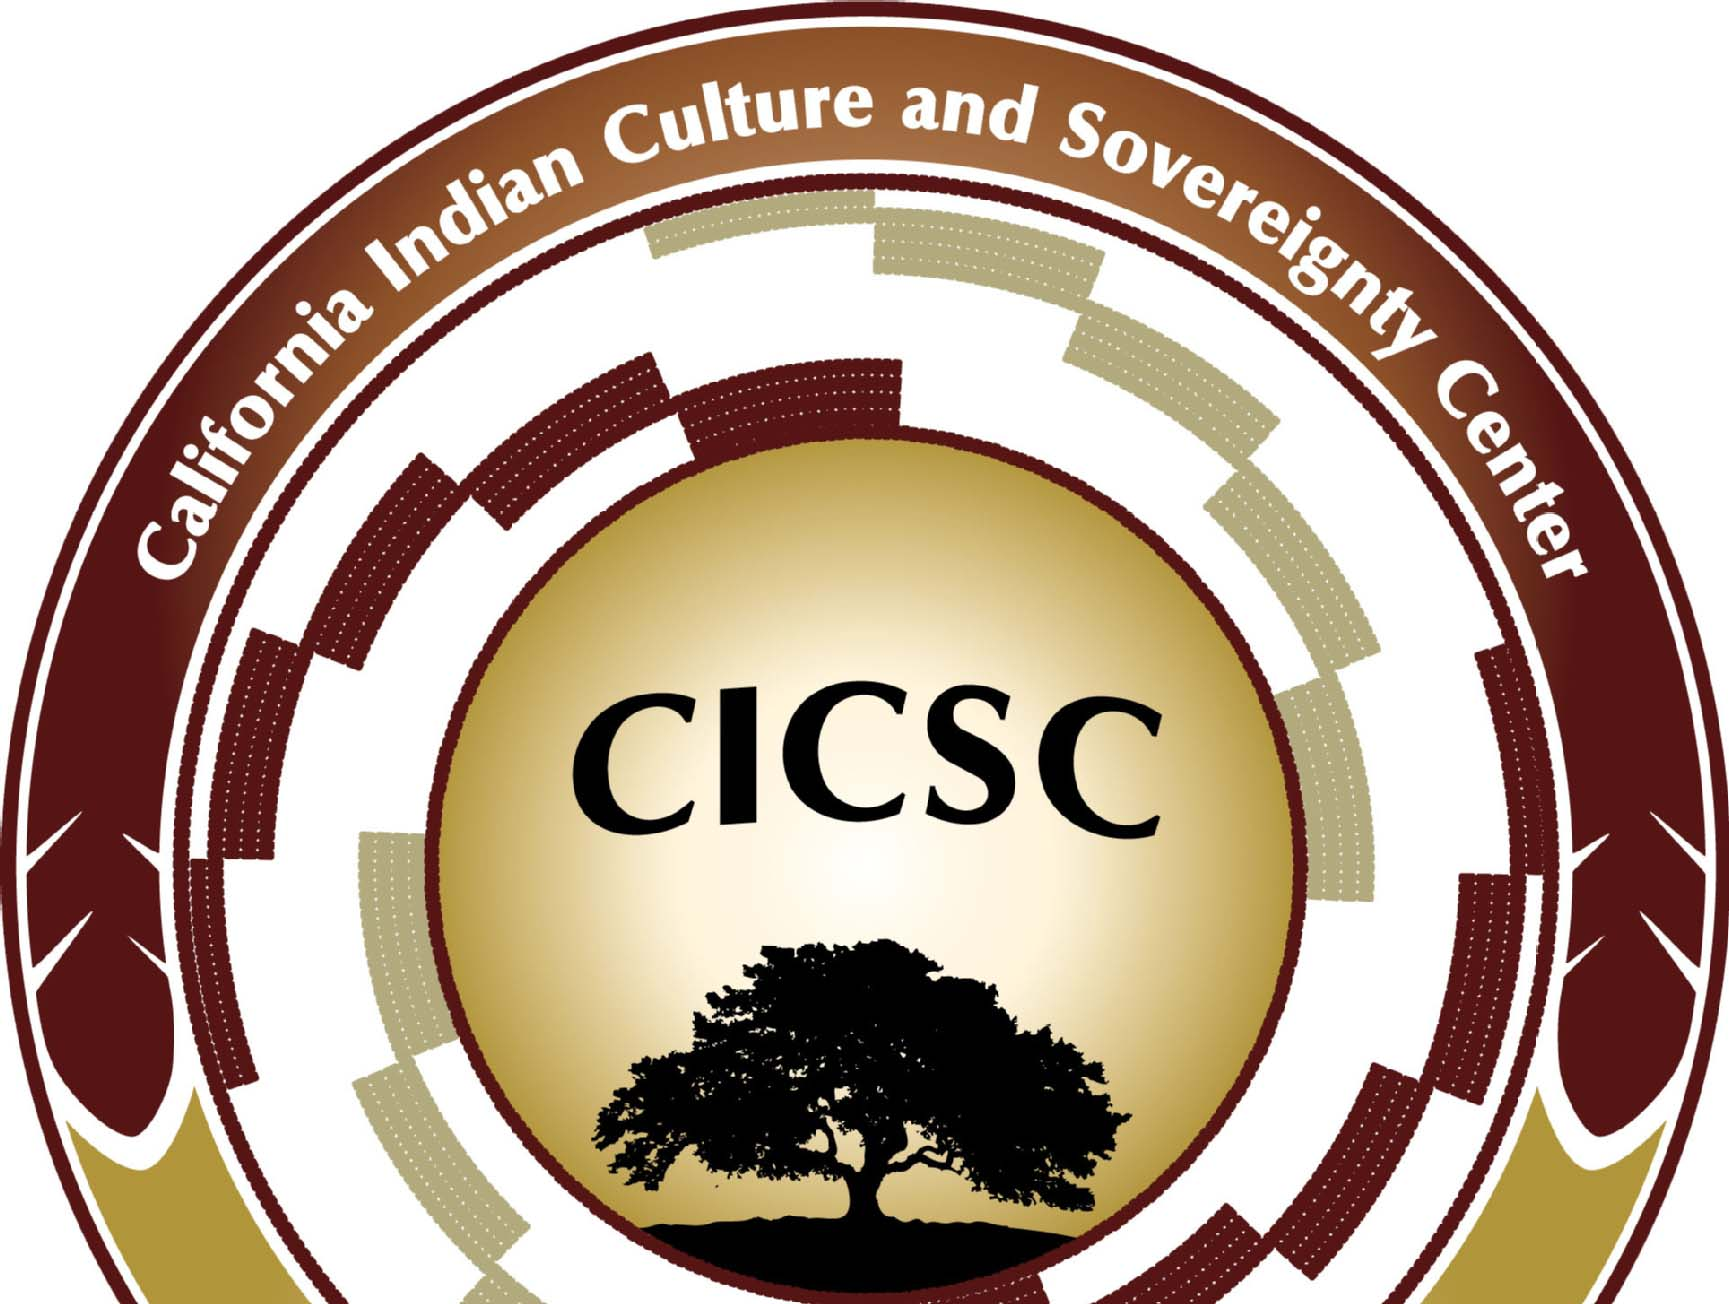 California Indian Culture and Sovereignty Center